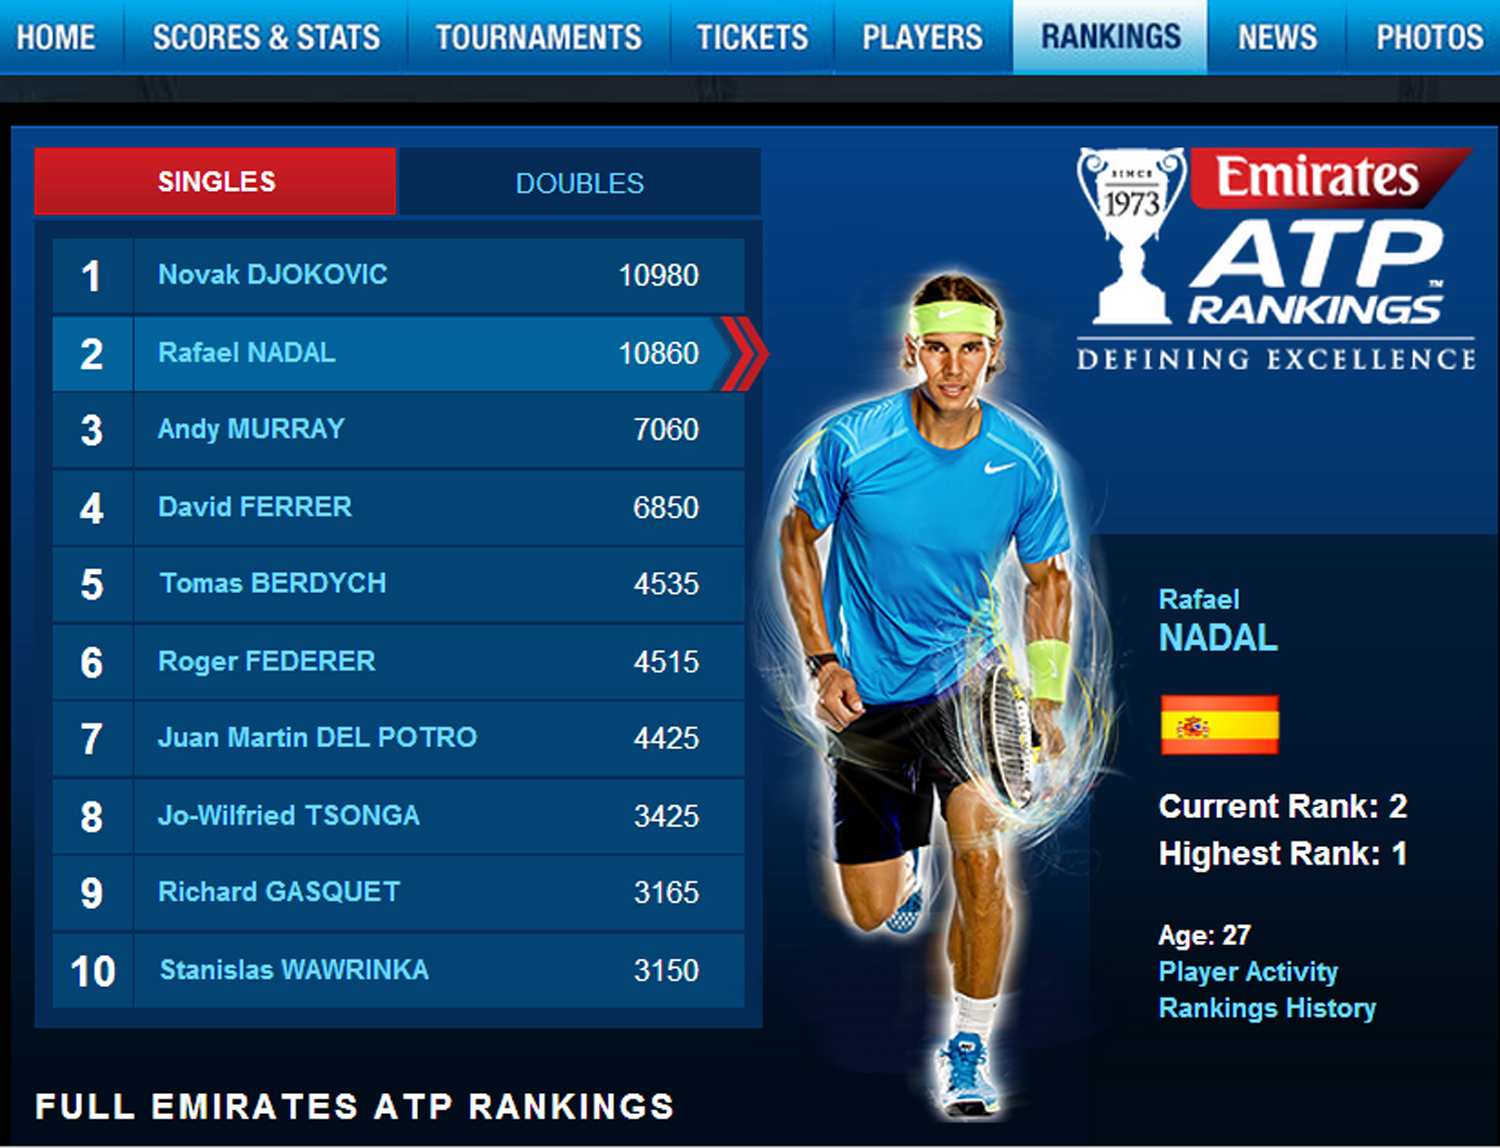 df383331189 New ATP Singles Rankings  Rafael Nadal is close to regaining World No. 1!